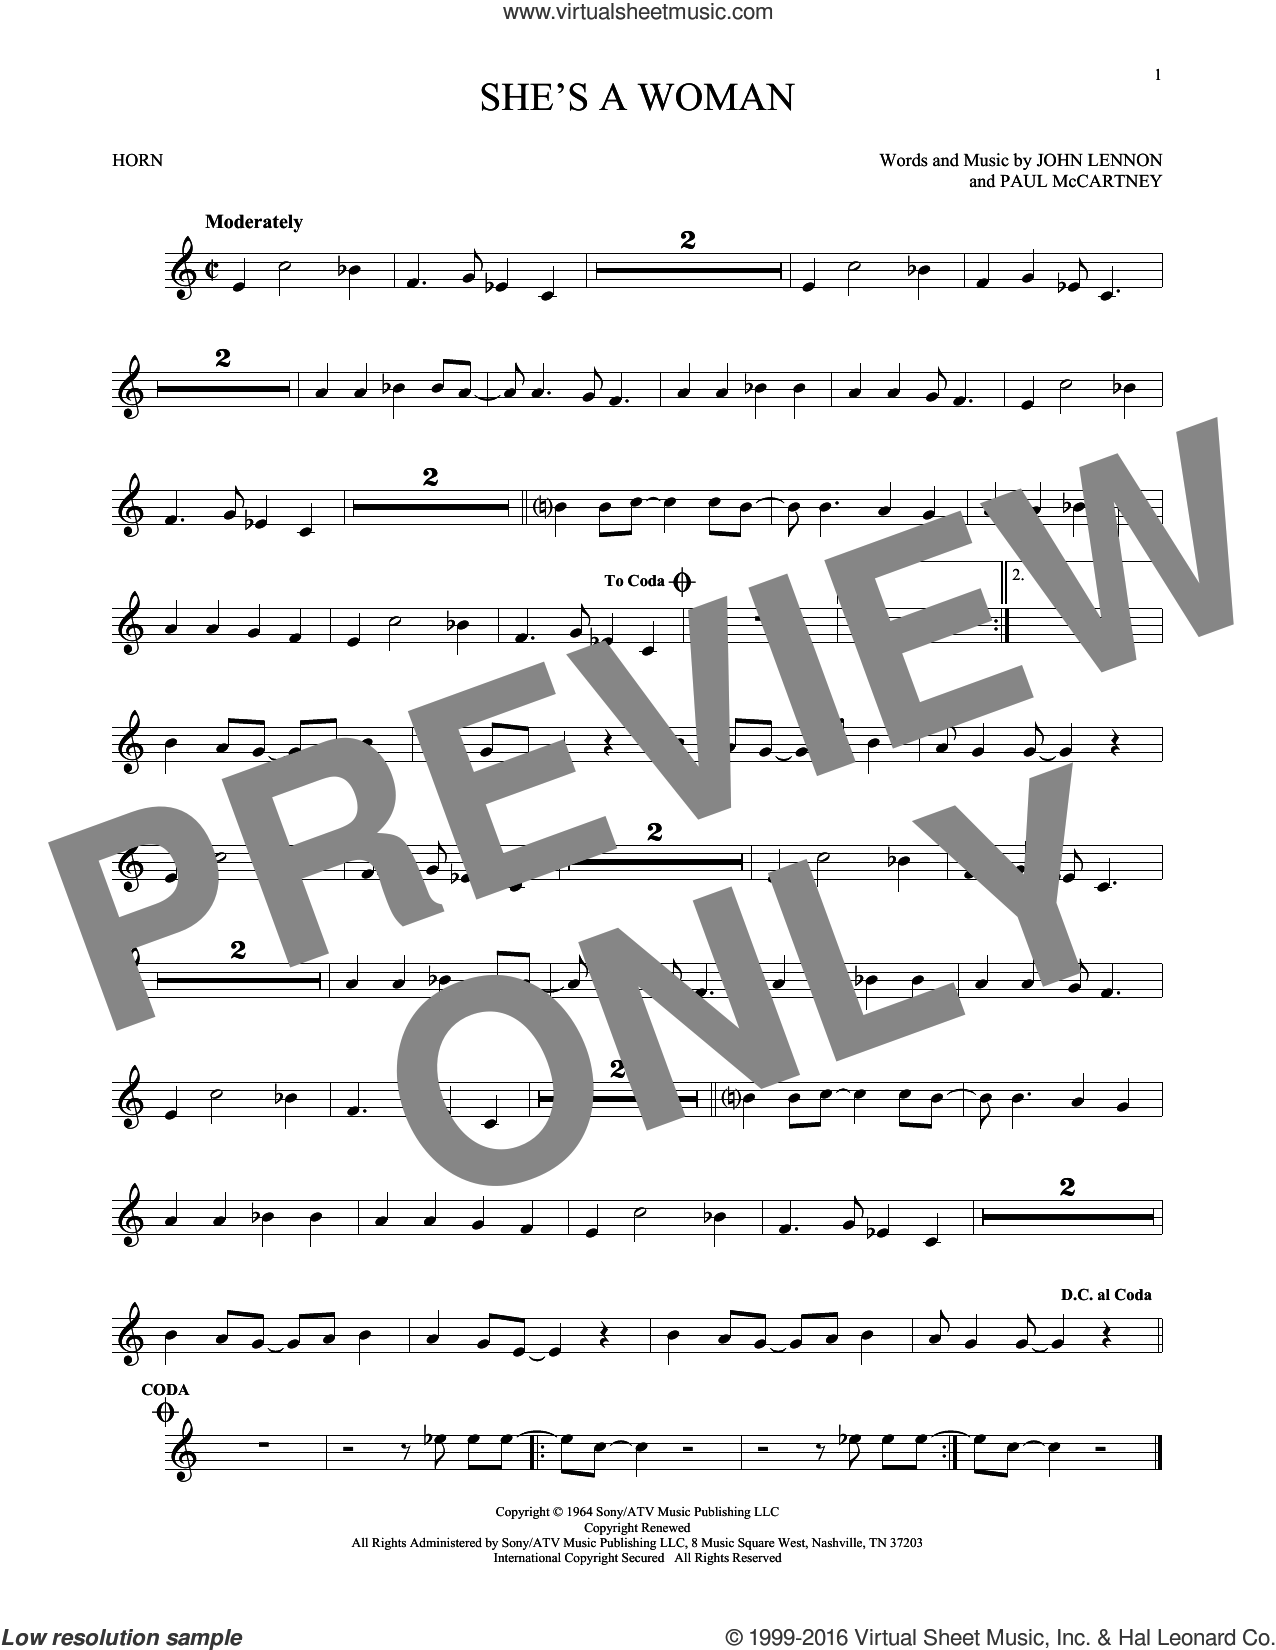 She's A Woman sheet music for horn solo by Paul McCartney